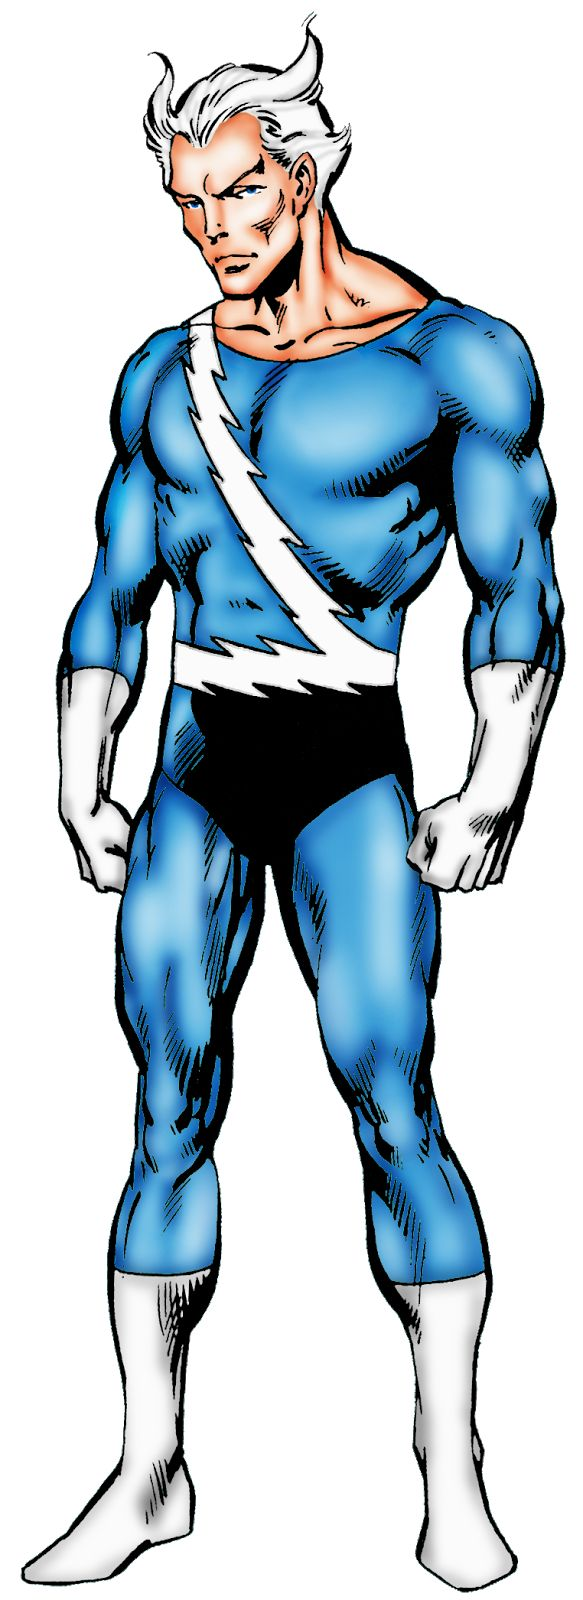 17 best images about quicksilver on pinterest scarlet